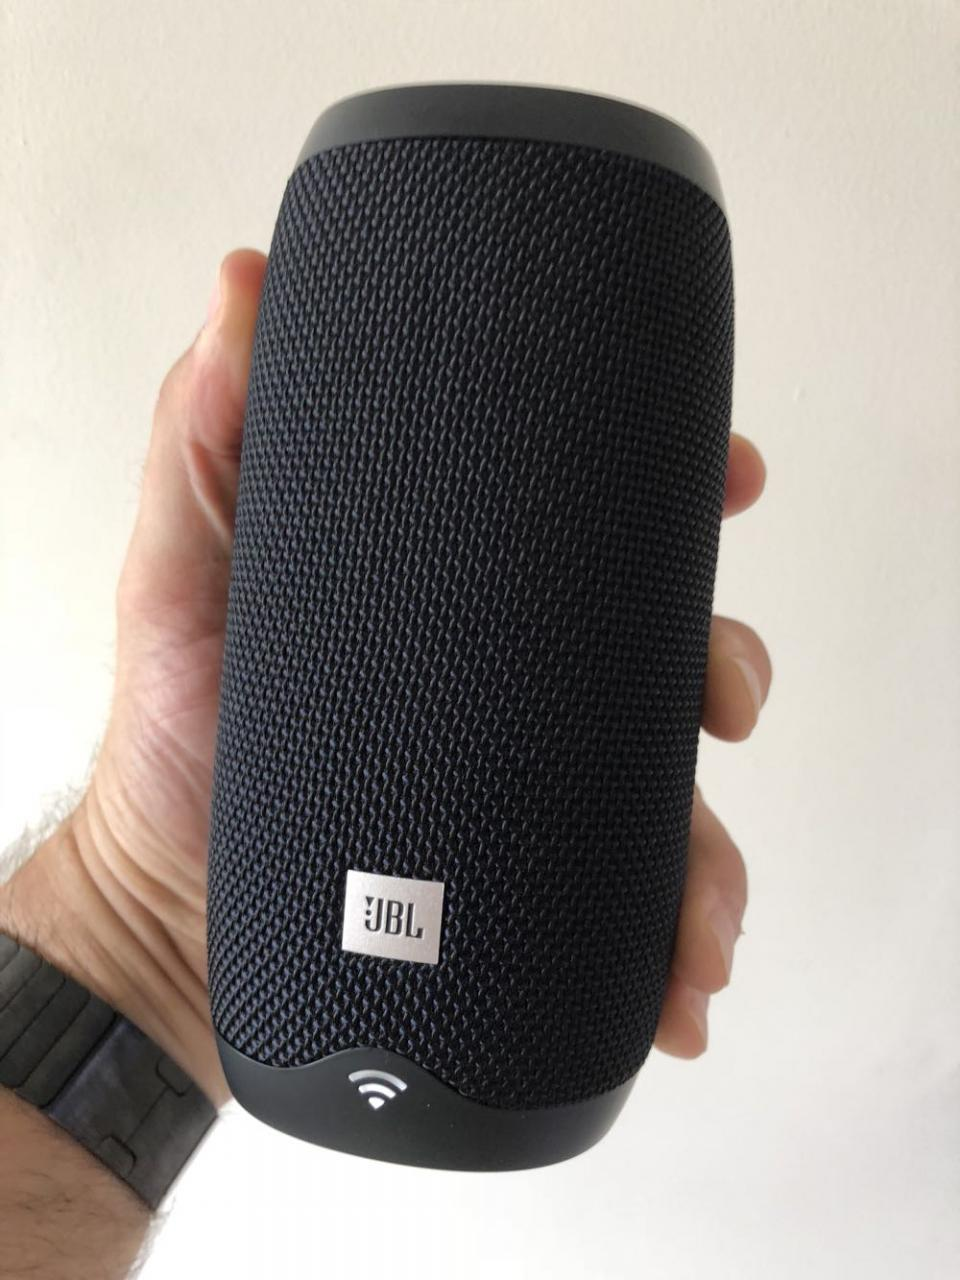 JBL Link voice activated speaker review – audio quality and